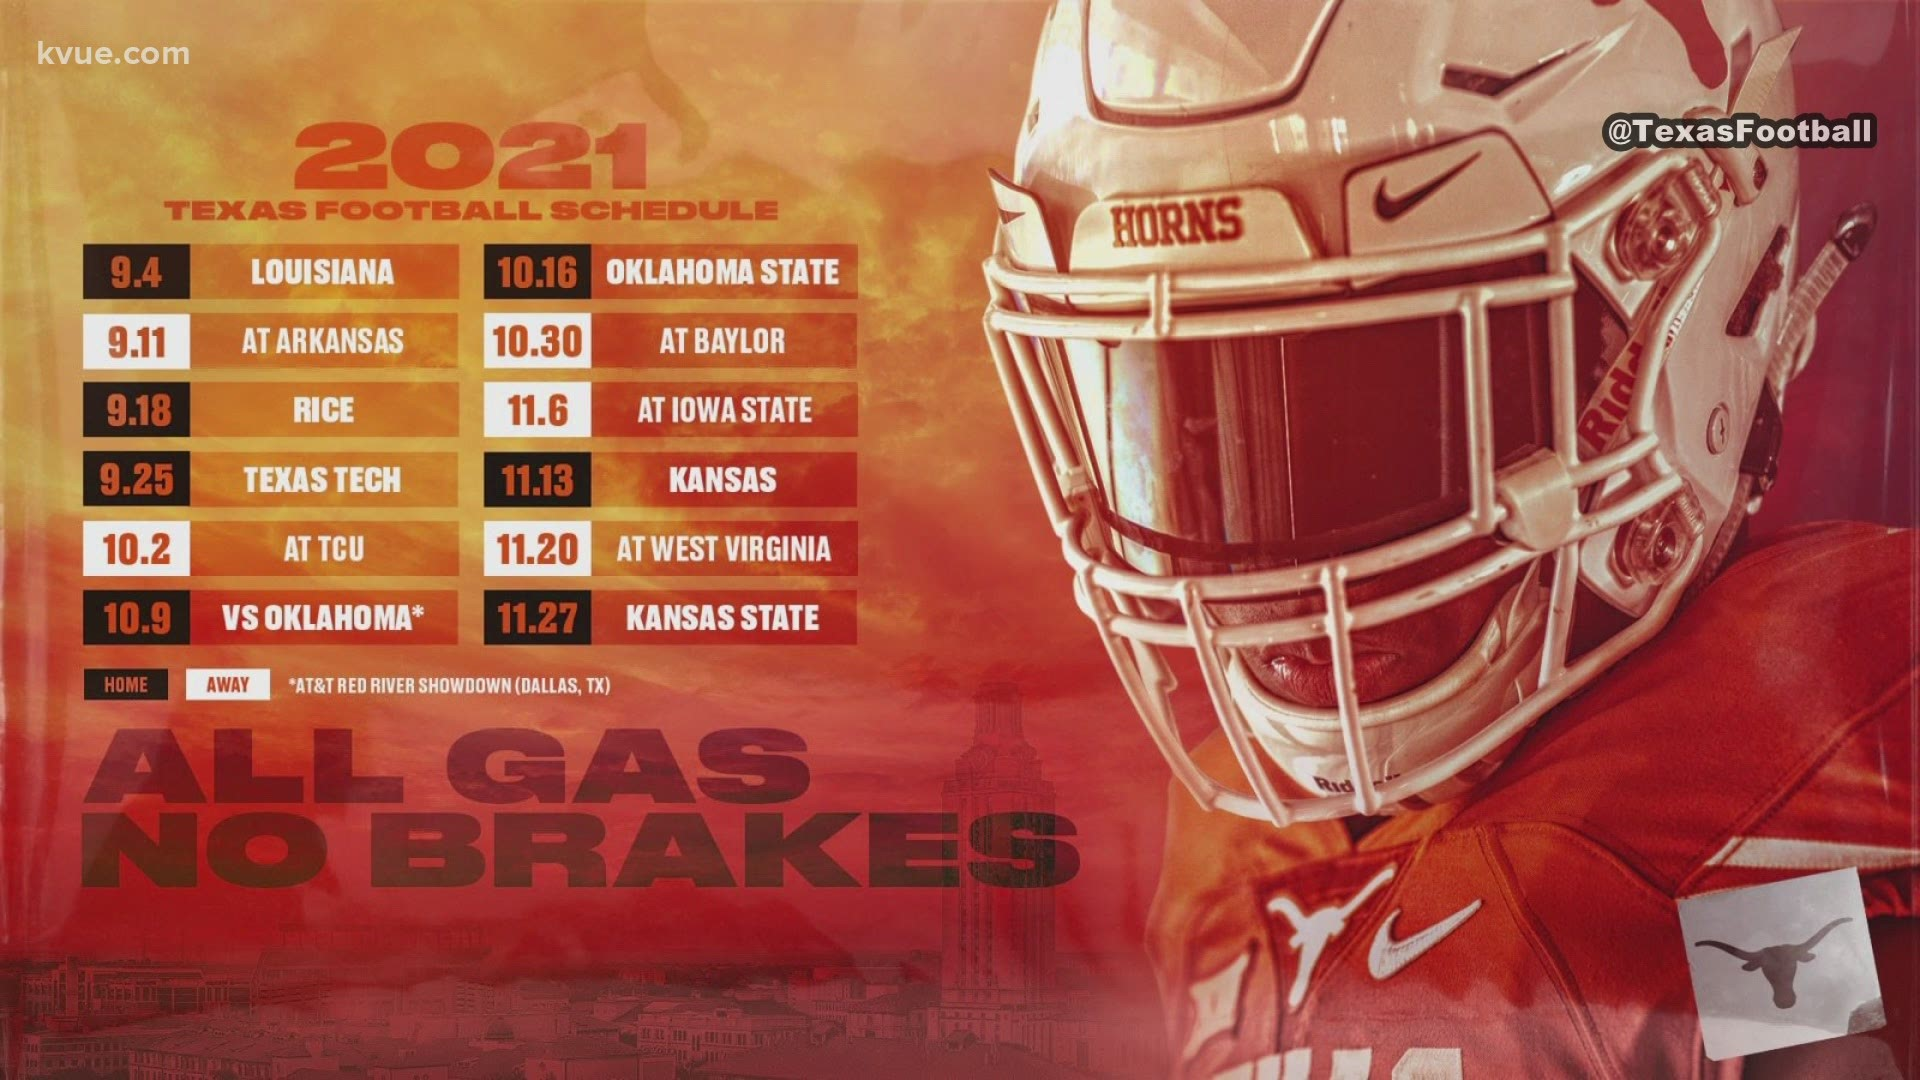 UT football 2021 schedule: Here's who the Longhorns are playing